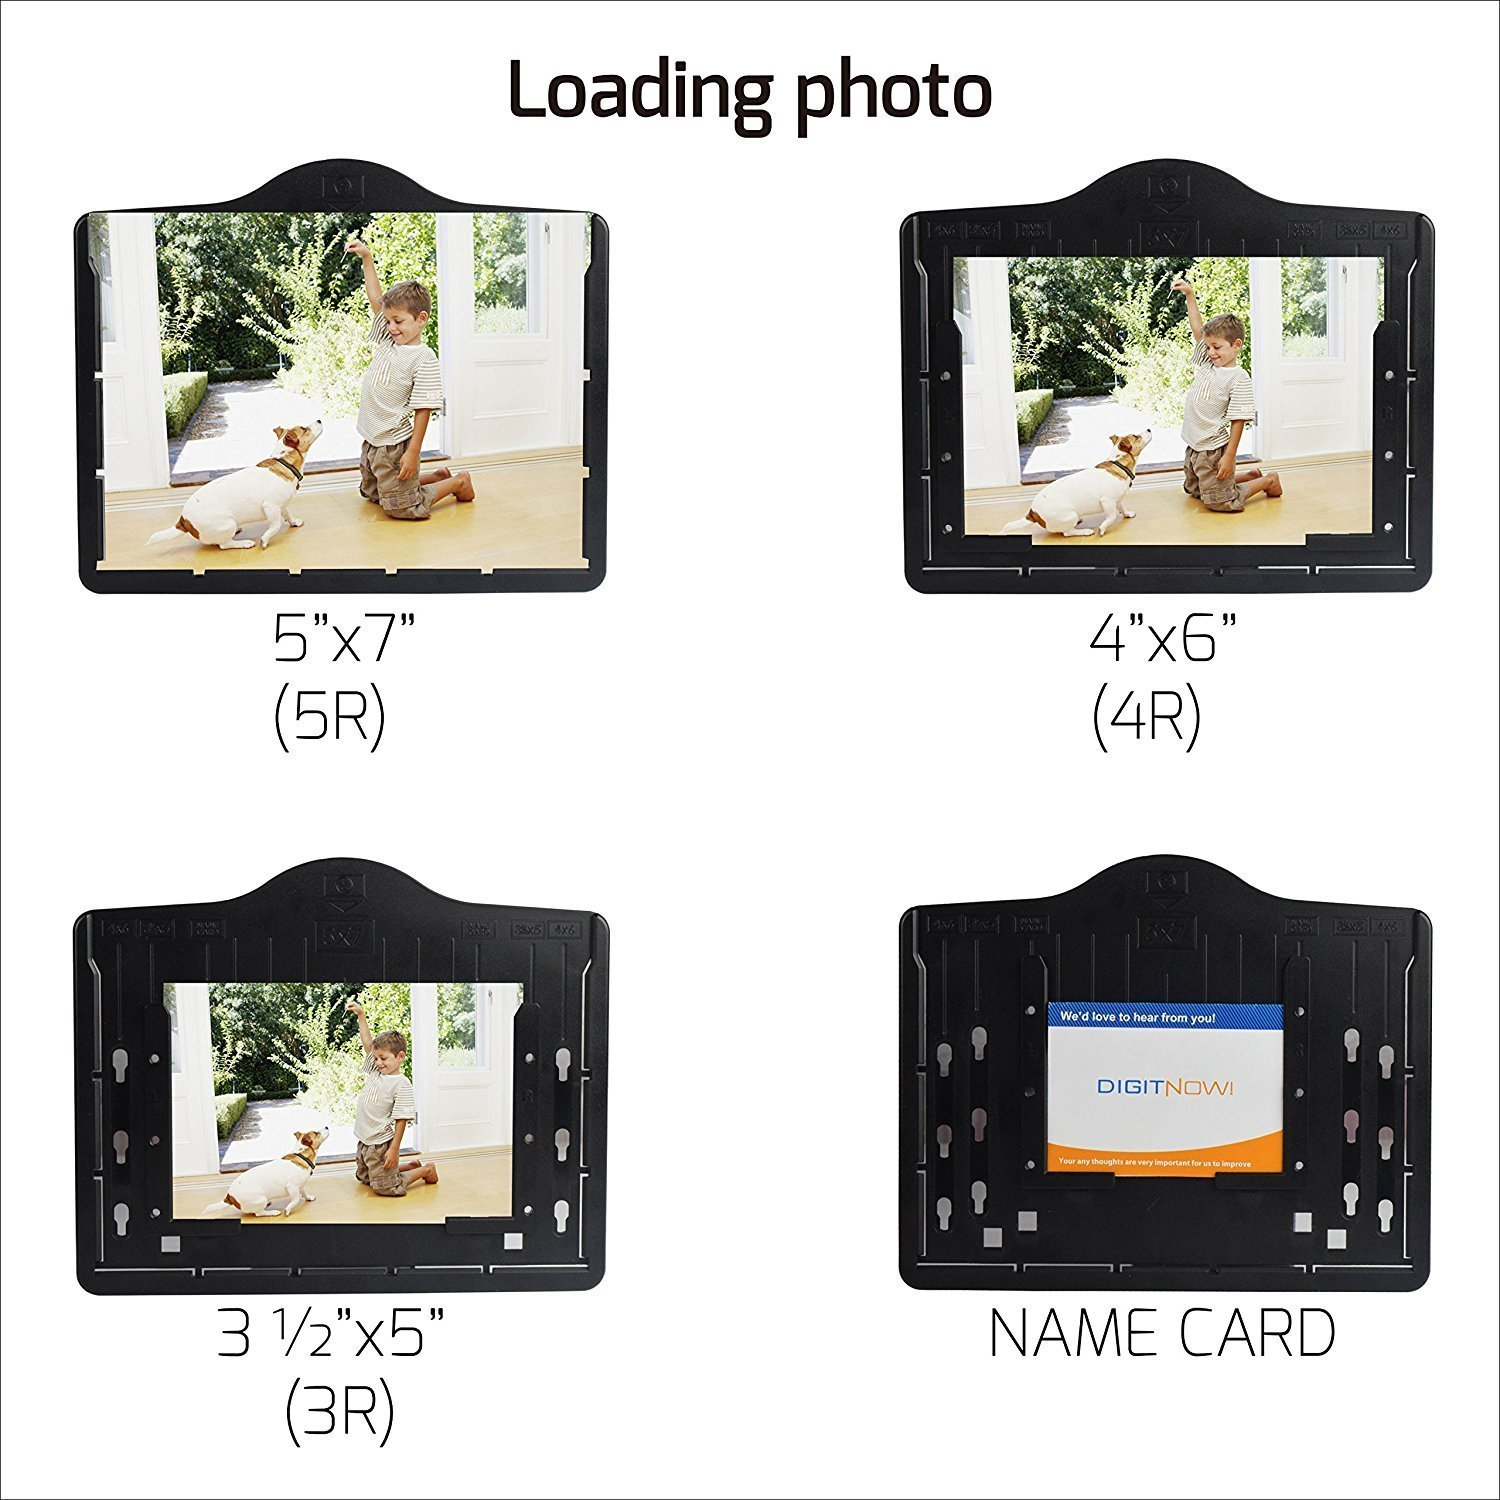 DIGITNOW 35mm /135slides&Negatives Film Scanner Photo, Name Card, Slides and Negatives to Digital Converter for Saving Films to Digital Files in 4GB SD card(Included) with Photo Editing Software by DigitNow! (Image #3)